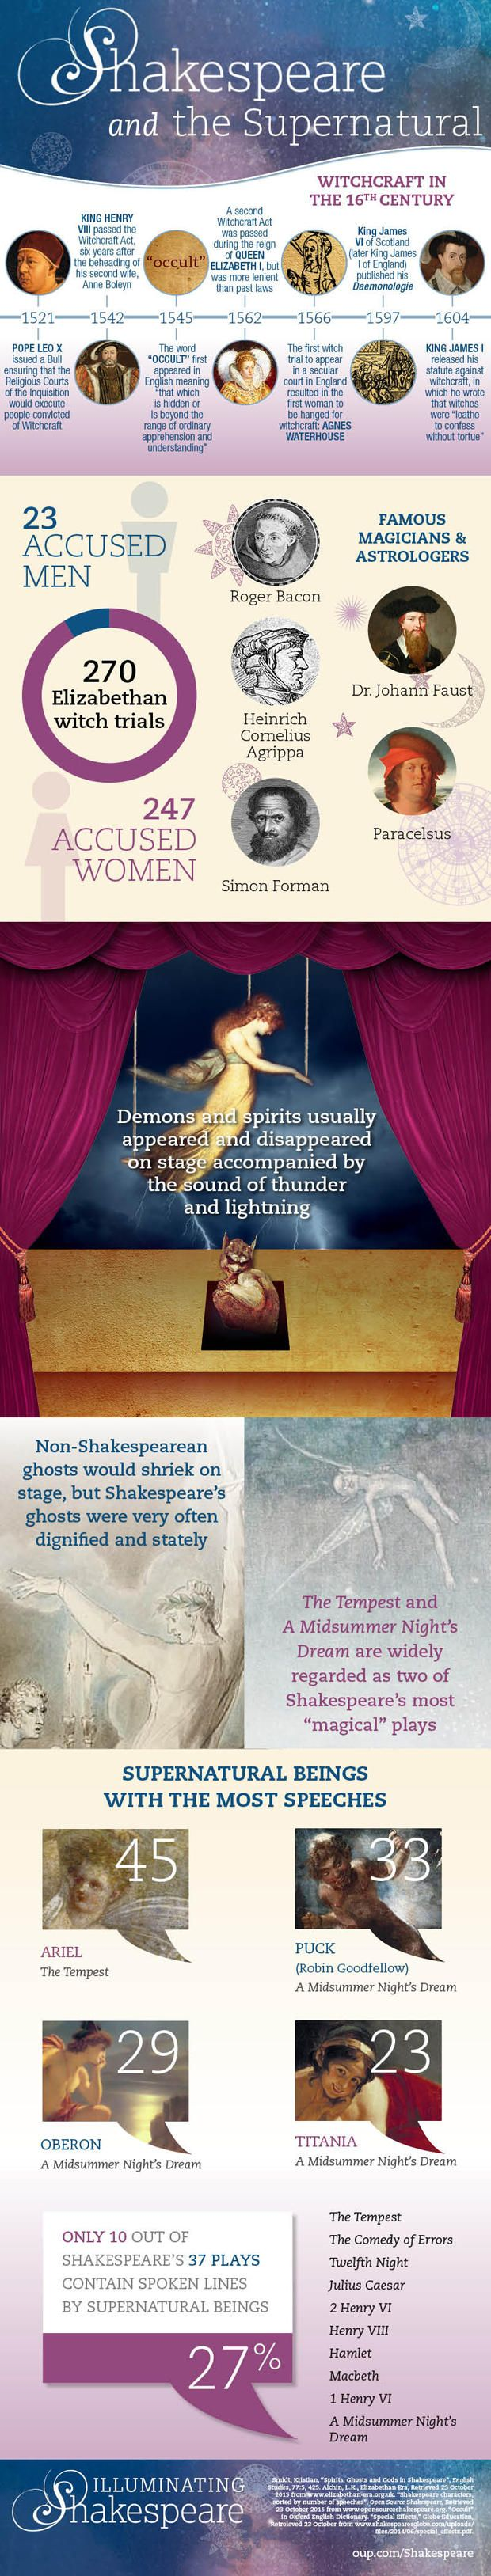 best images about william shakespeare the infographic explores shakespeare s relationship the supernatural